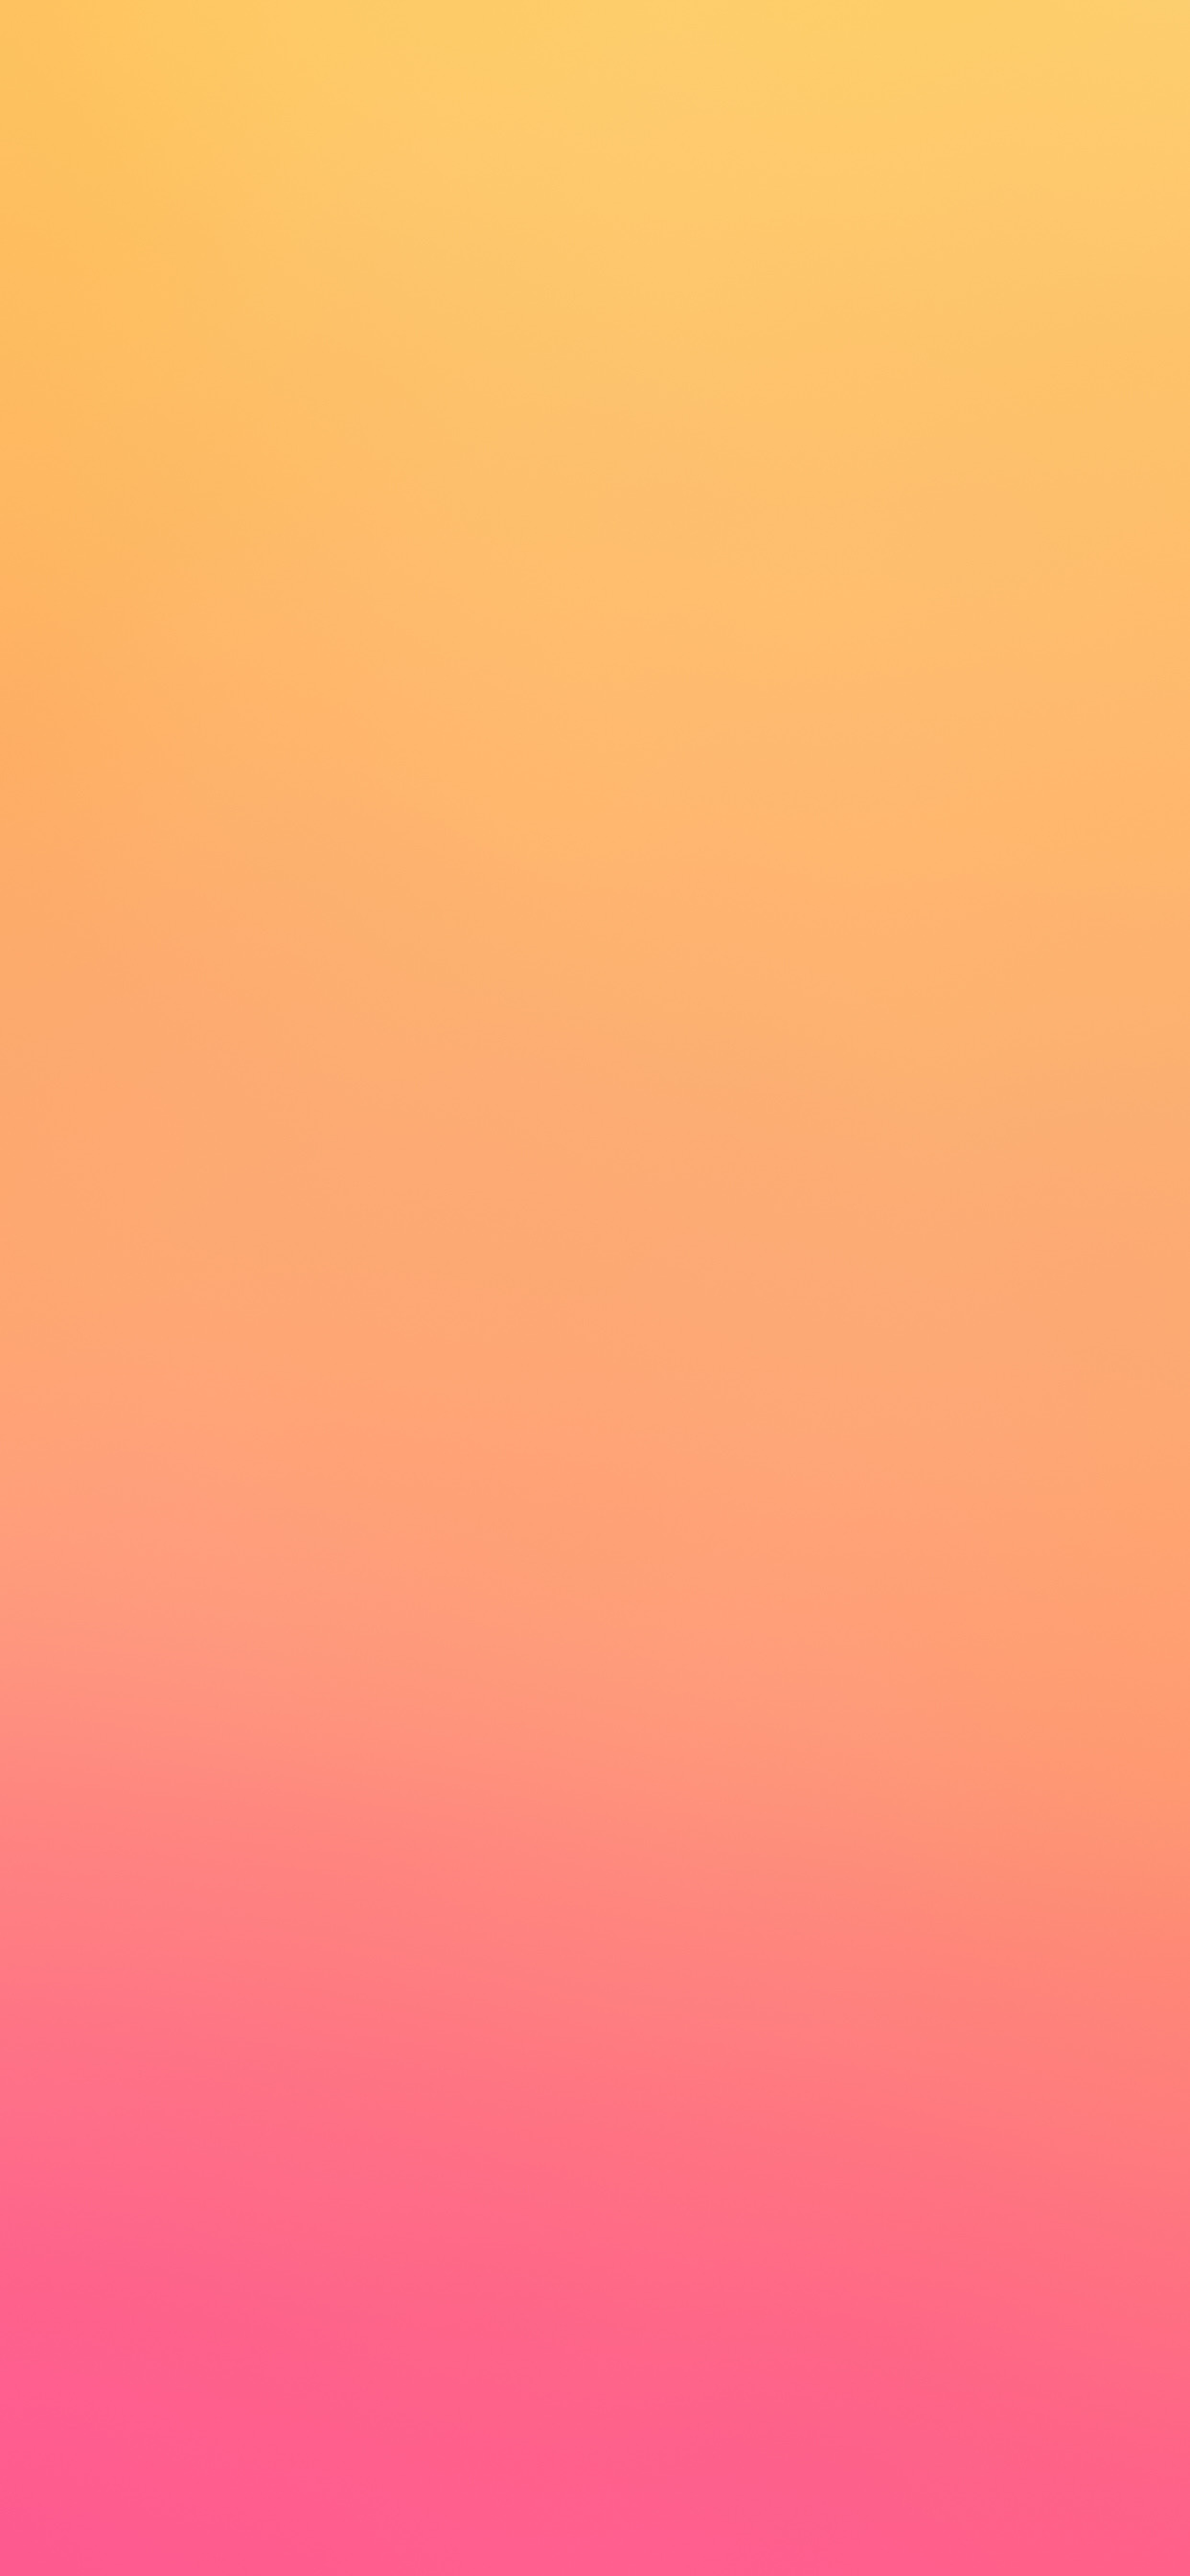 iOS 14 promotional gradients iphone wallpaper ar72014 idownloadblog 4